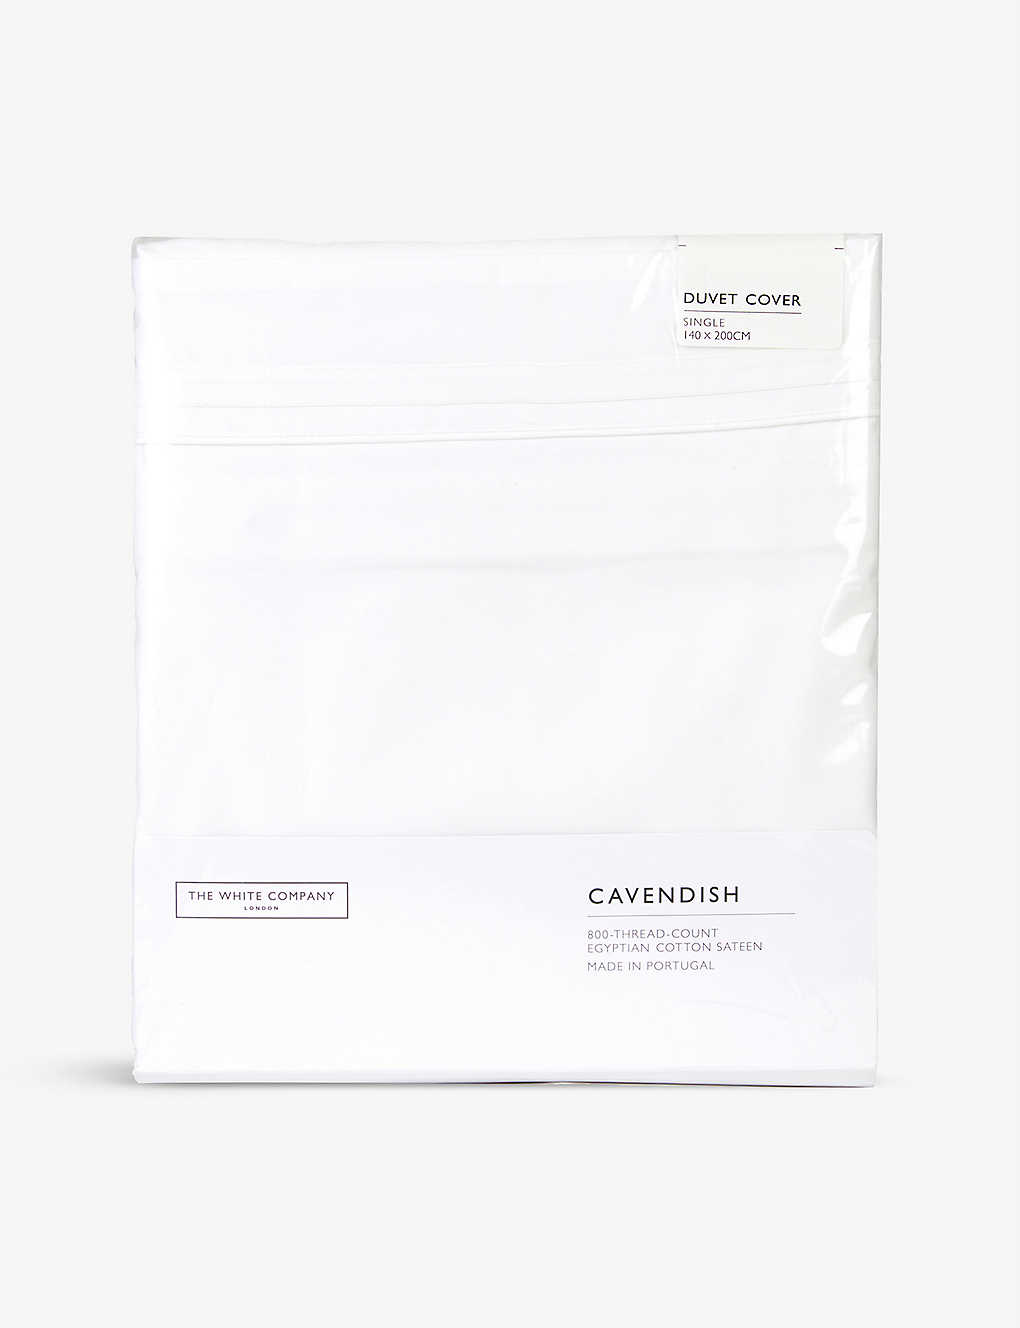 THE WHITE COMPANY: Cavendish Egyptian cotton single duvet cover 140x200cm